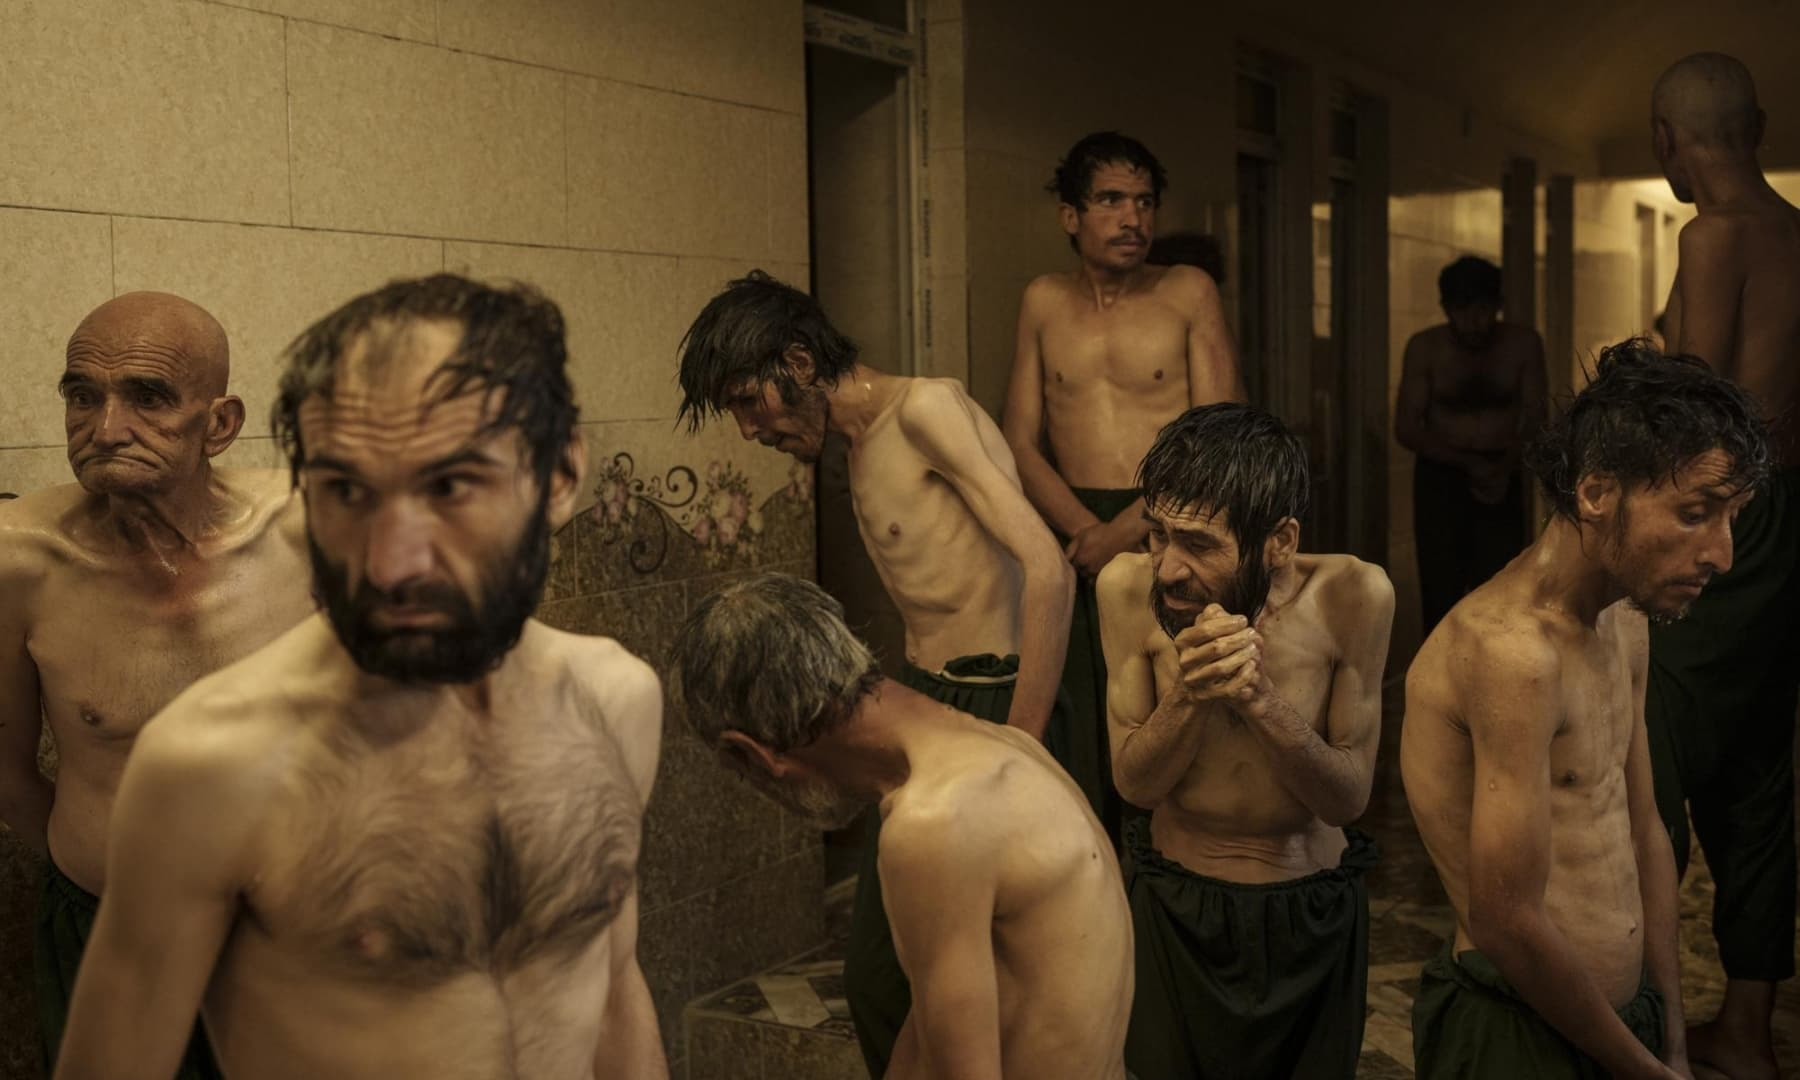 Drug users detained during a Taliban raid wait to be shaved after arriving at Avicenna Medical Hospital for Drug Treatment in Kabul, Afghanistan, October 1, 2021. — AP